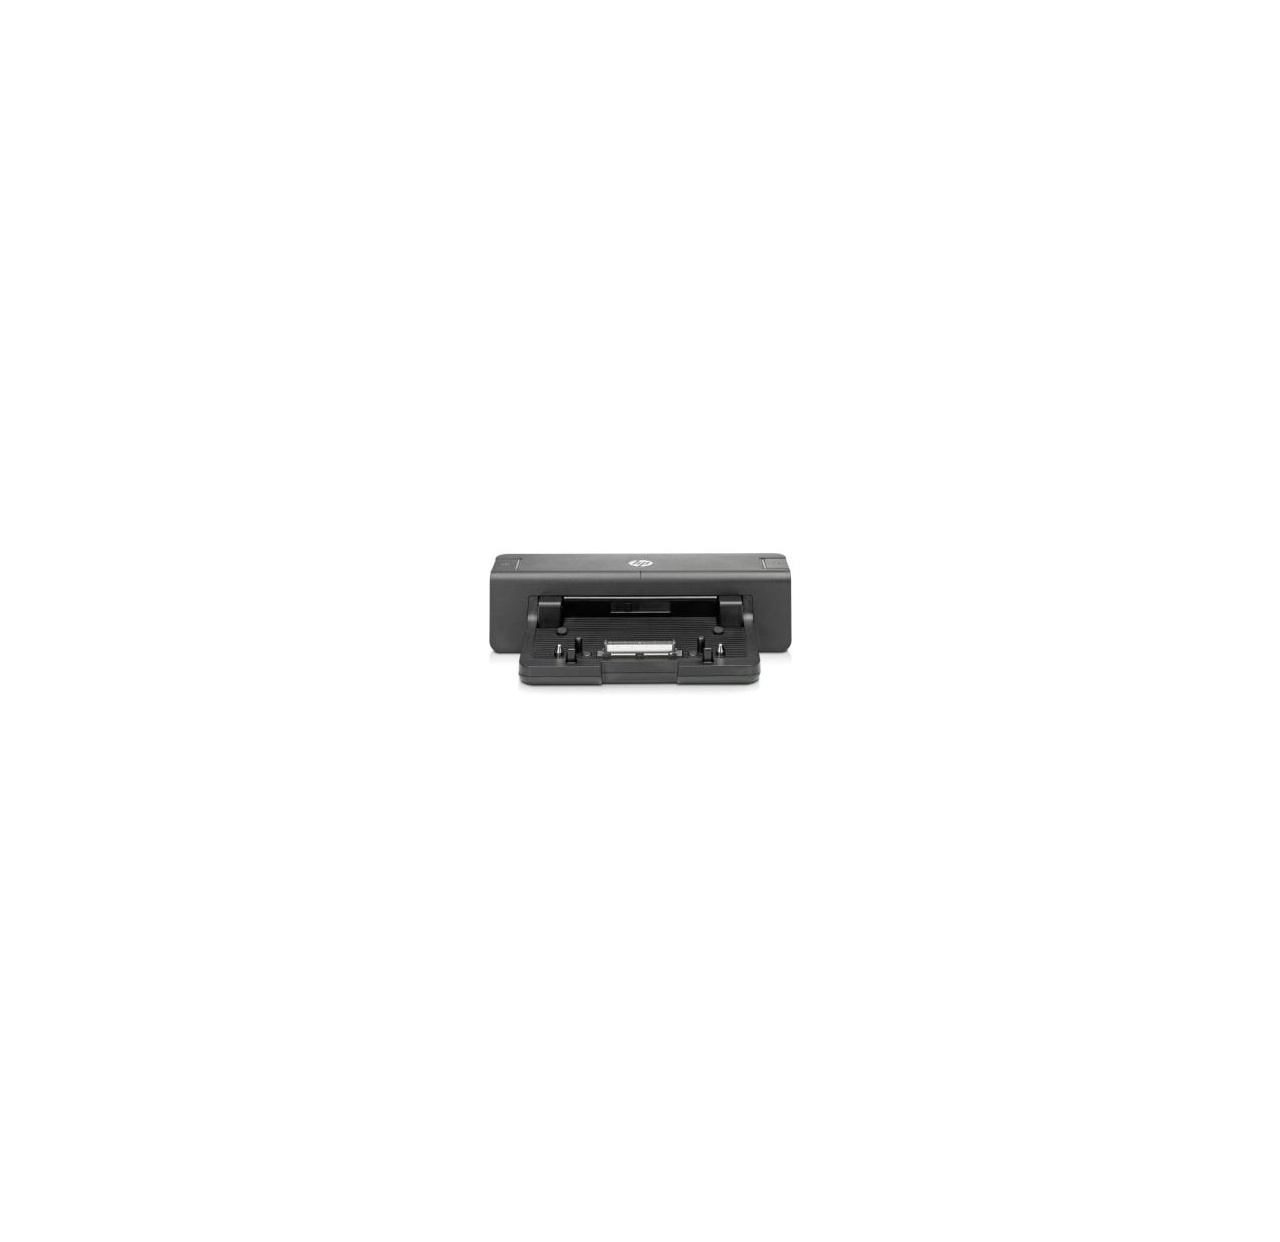 Stacja dokująca HP 2012 230W Docking Station (USB 3.0, display port 1.2)